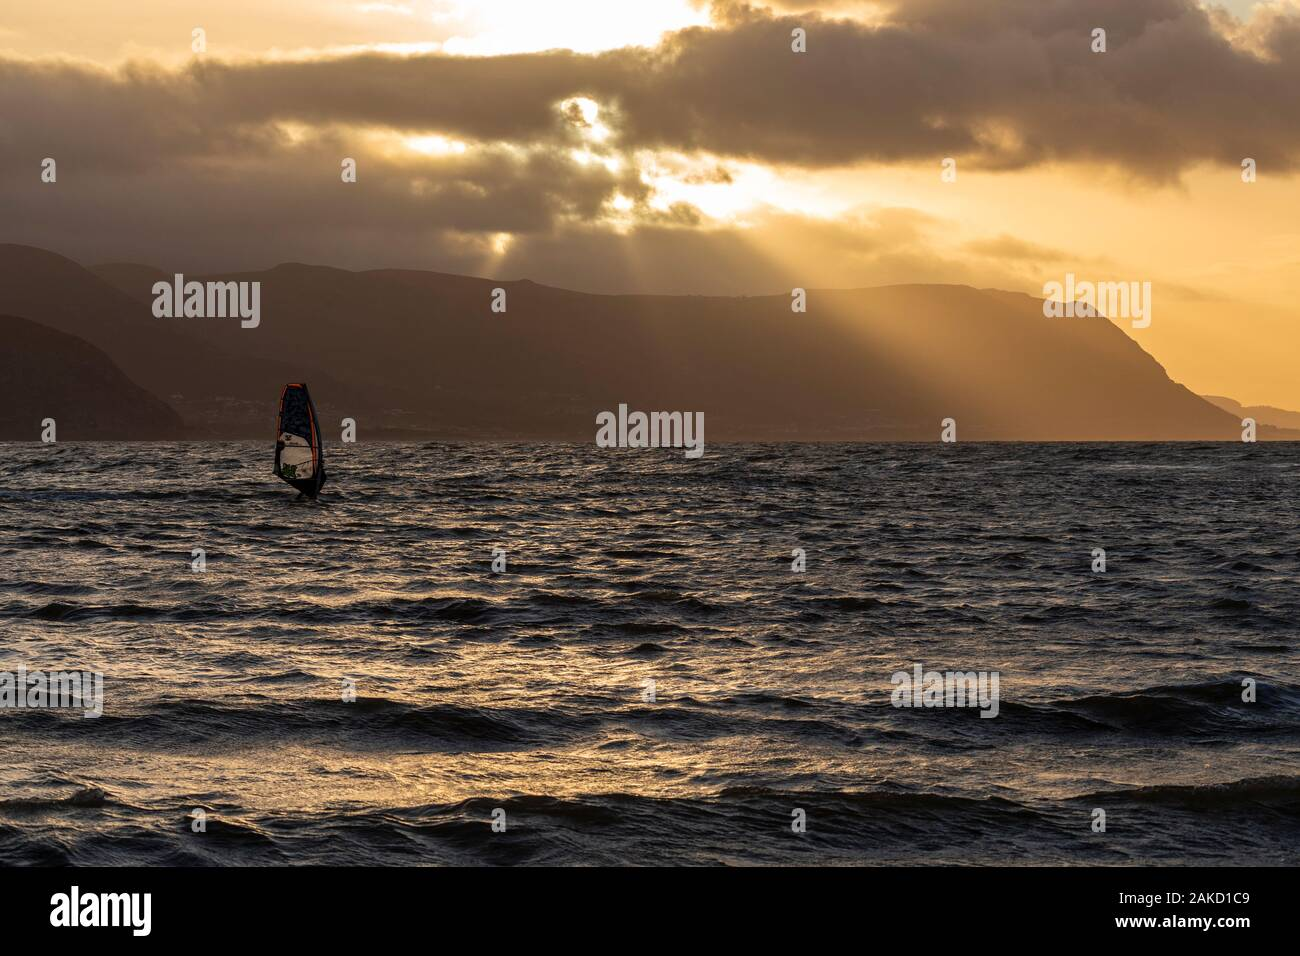 Wind surfing at Llandudno West Shore, North Wales coast Stock Photo